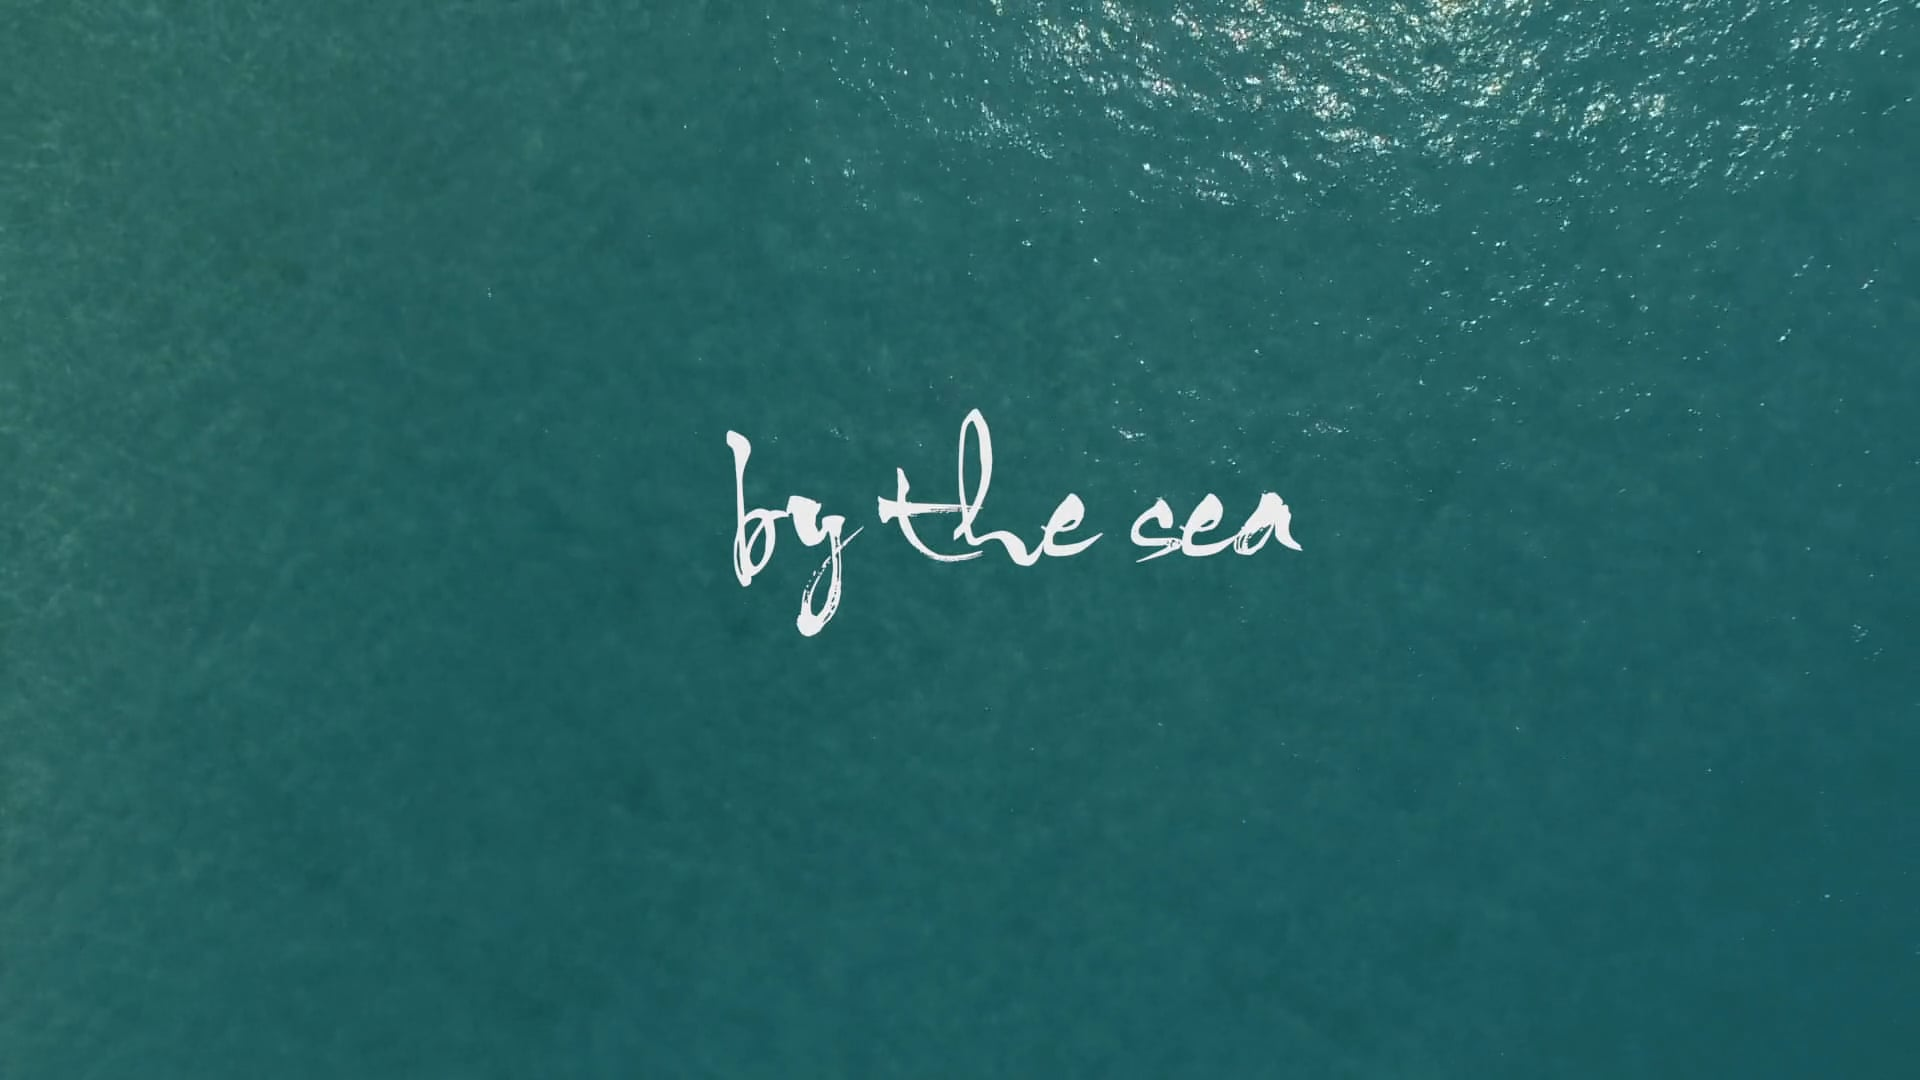 By the Sea - Listras